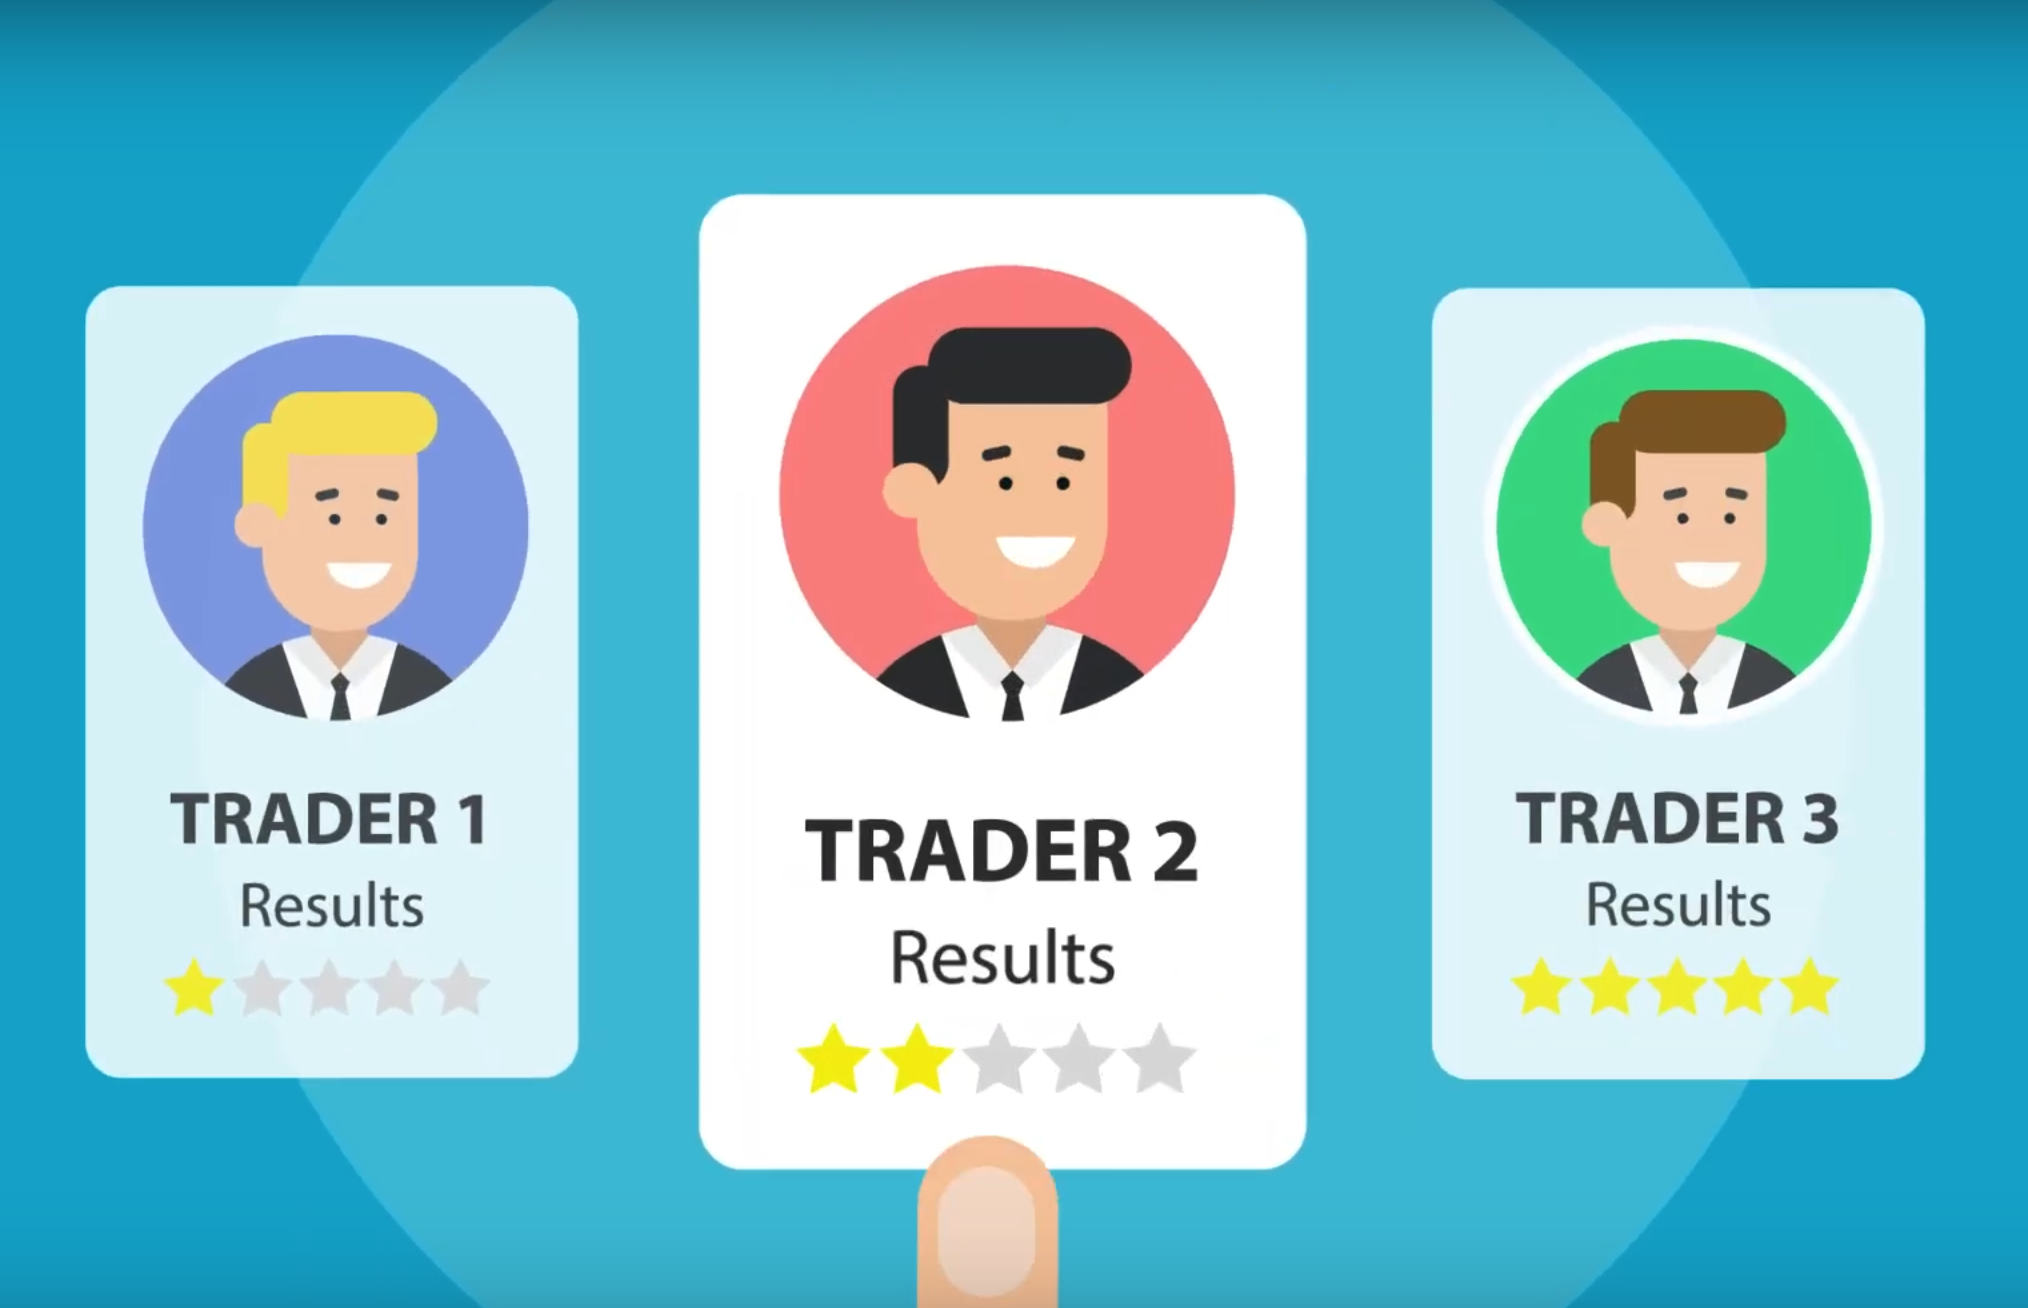 Coinmatics displays all signals for each trader's strategy, as well as the trader's trading period, total and average profit,